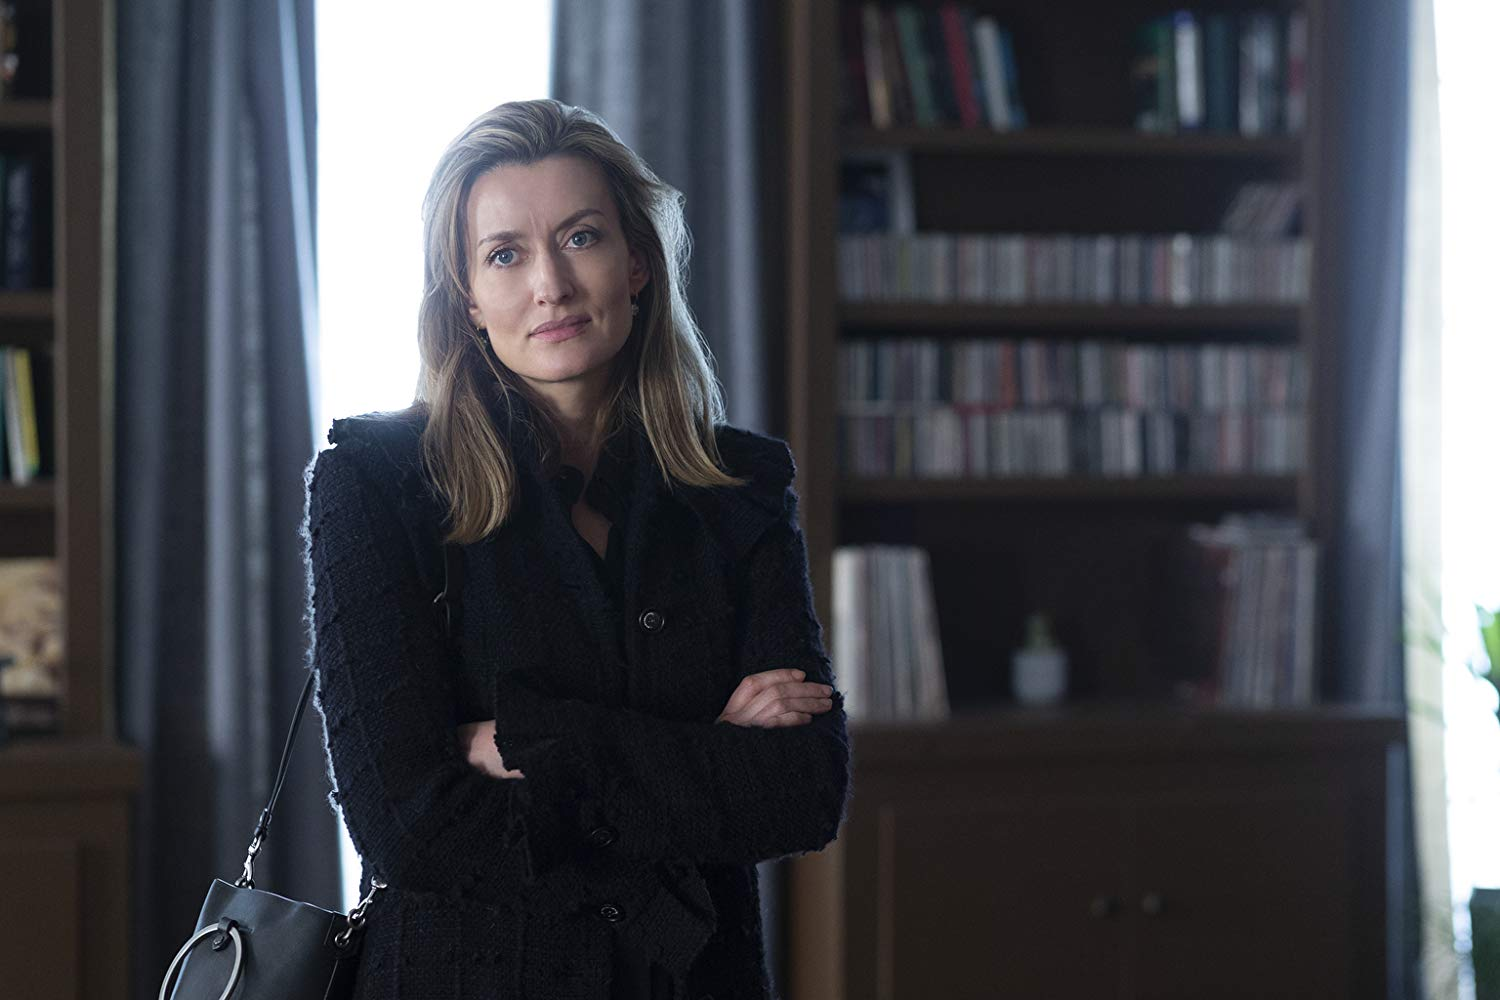 The First: Natascha McElhone nell'episodio Collisions